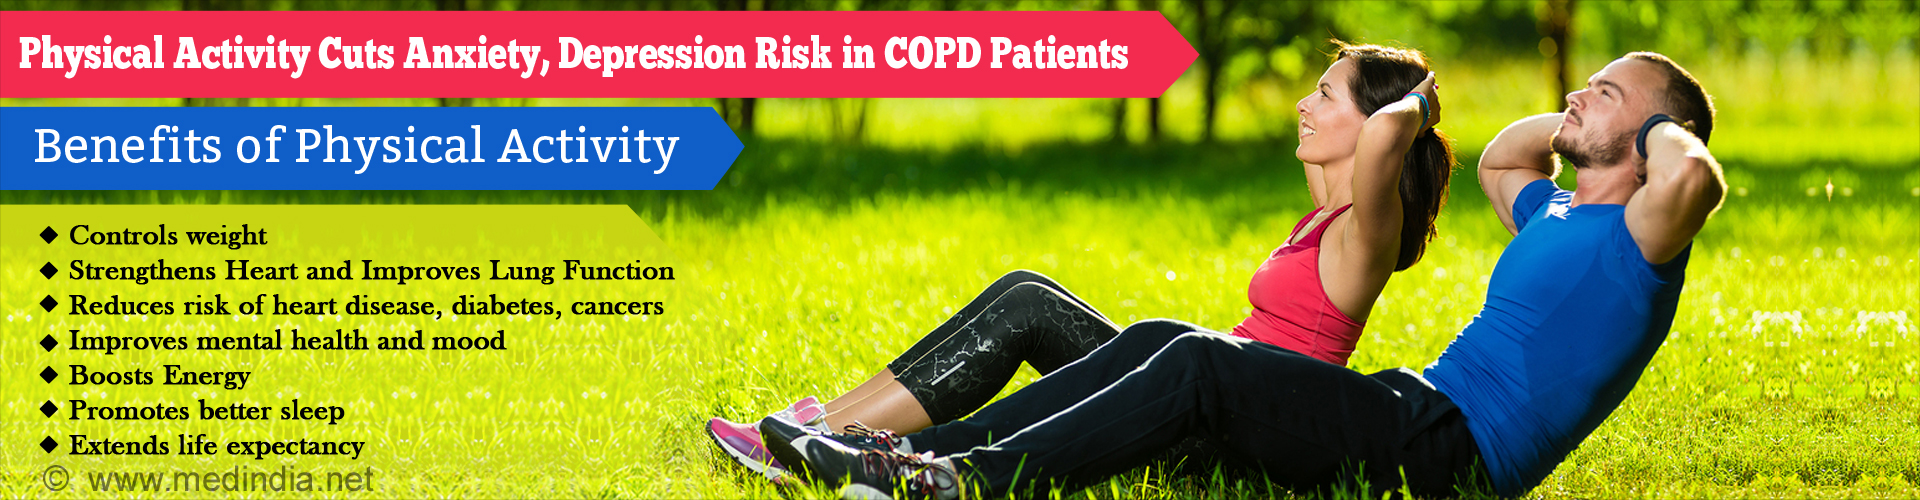 Exercise Reduces Anxiety, Depression Risk in COPD Patients